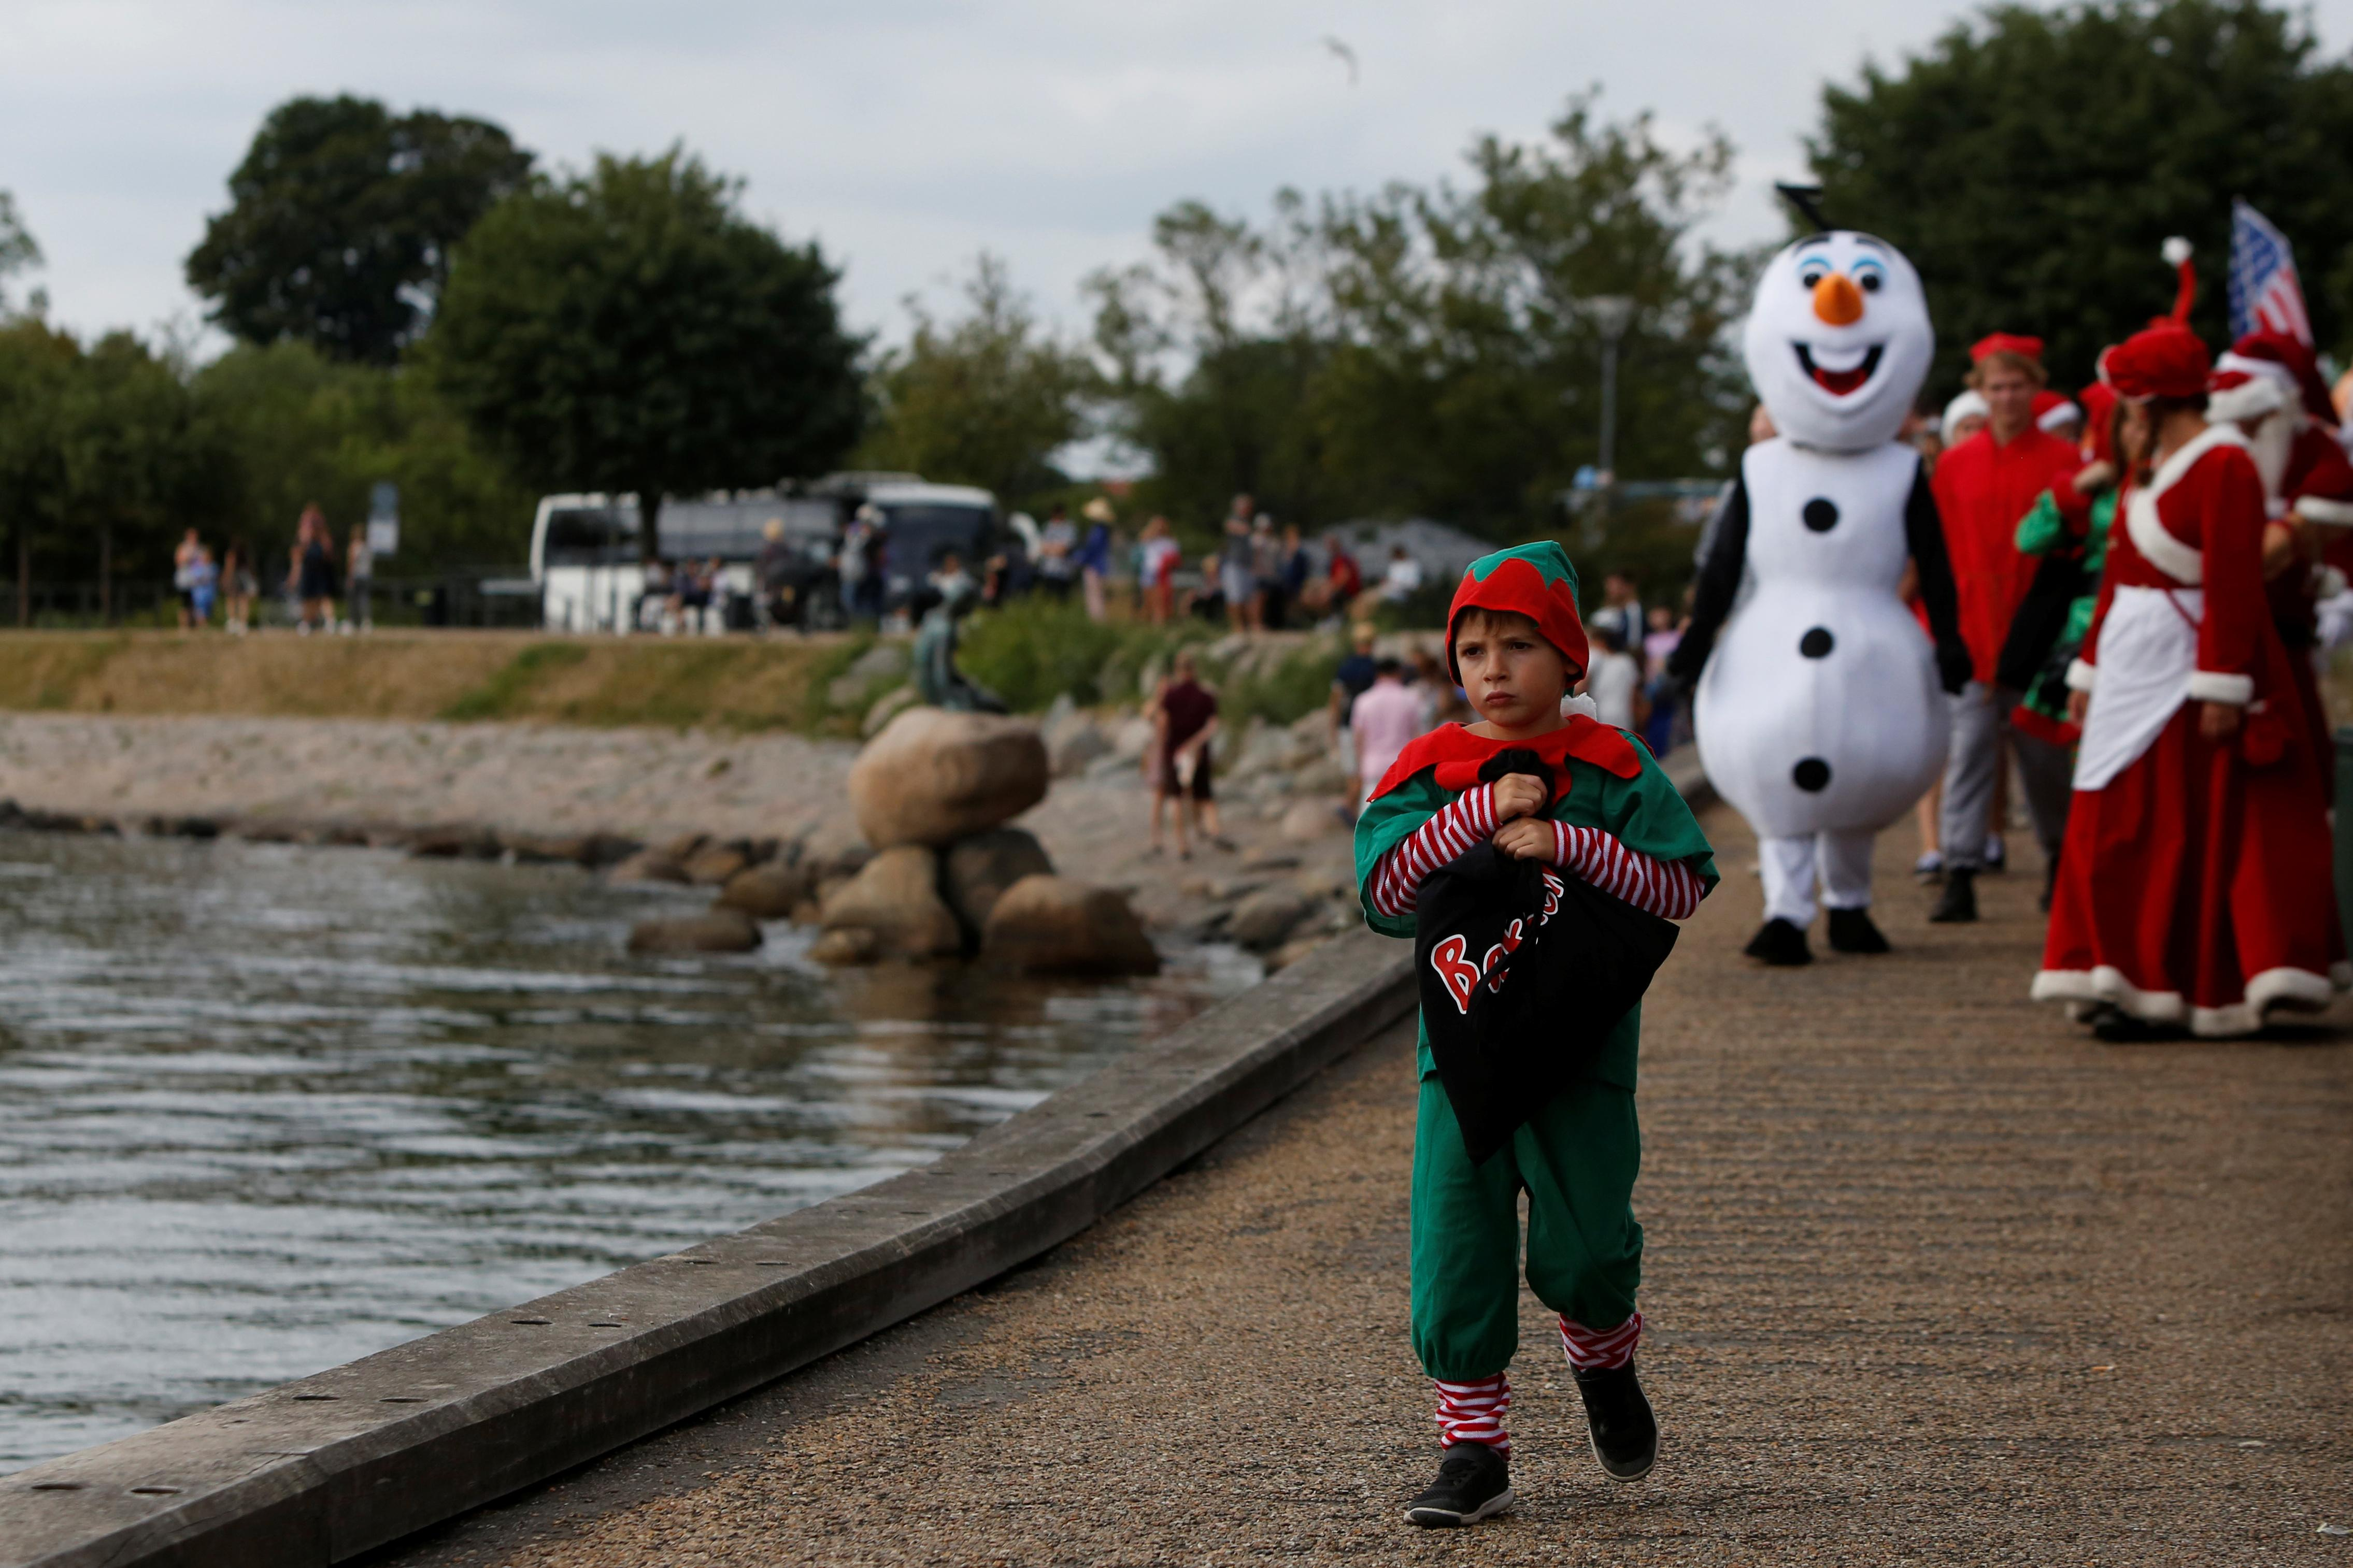 A child dressed as an elf walks along the waterfront during an event in the World Santa Claus Congress, an annual event held every summer in Copenhagen, Denmark, July 23, 2018.  Andrew Kelly